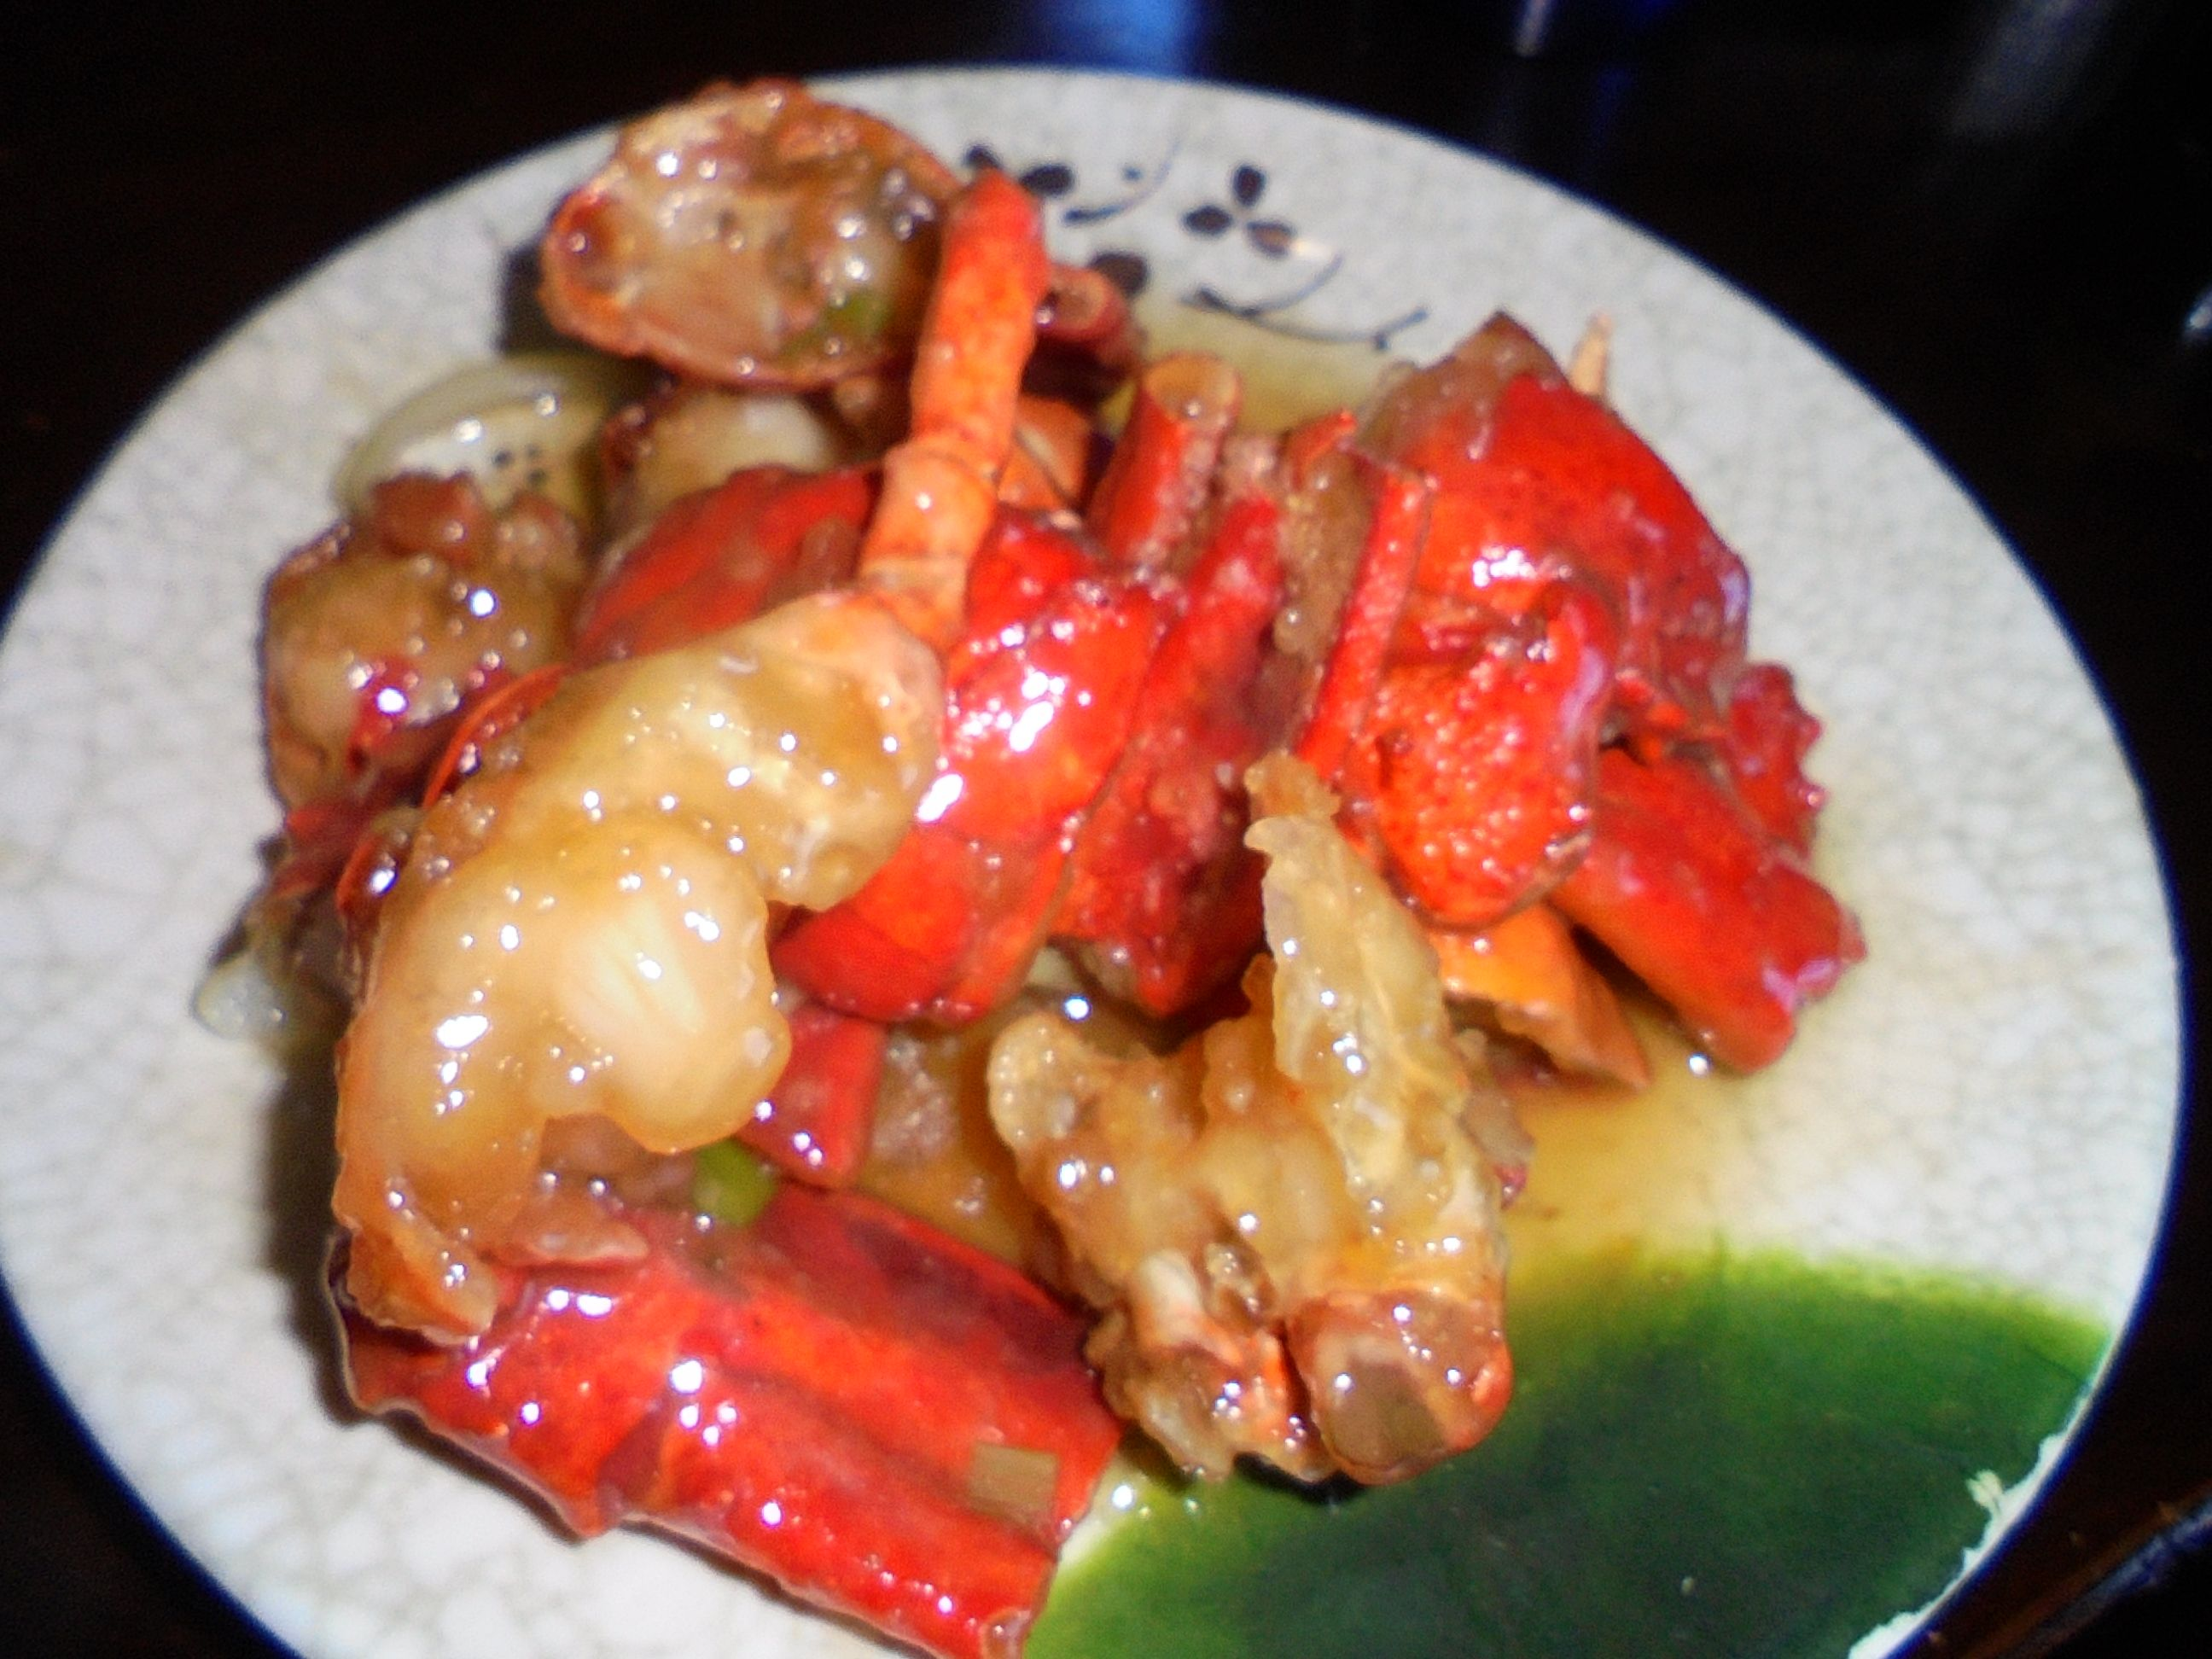 #Lobster #welldone #Hibachi #style #dressed in #delicious #GarlicButter #sauce